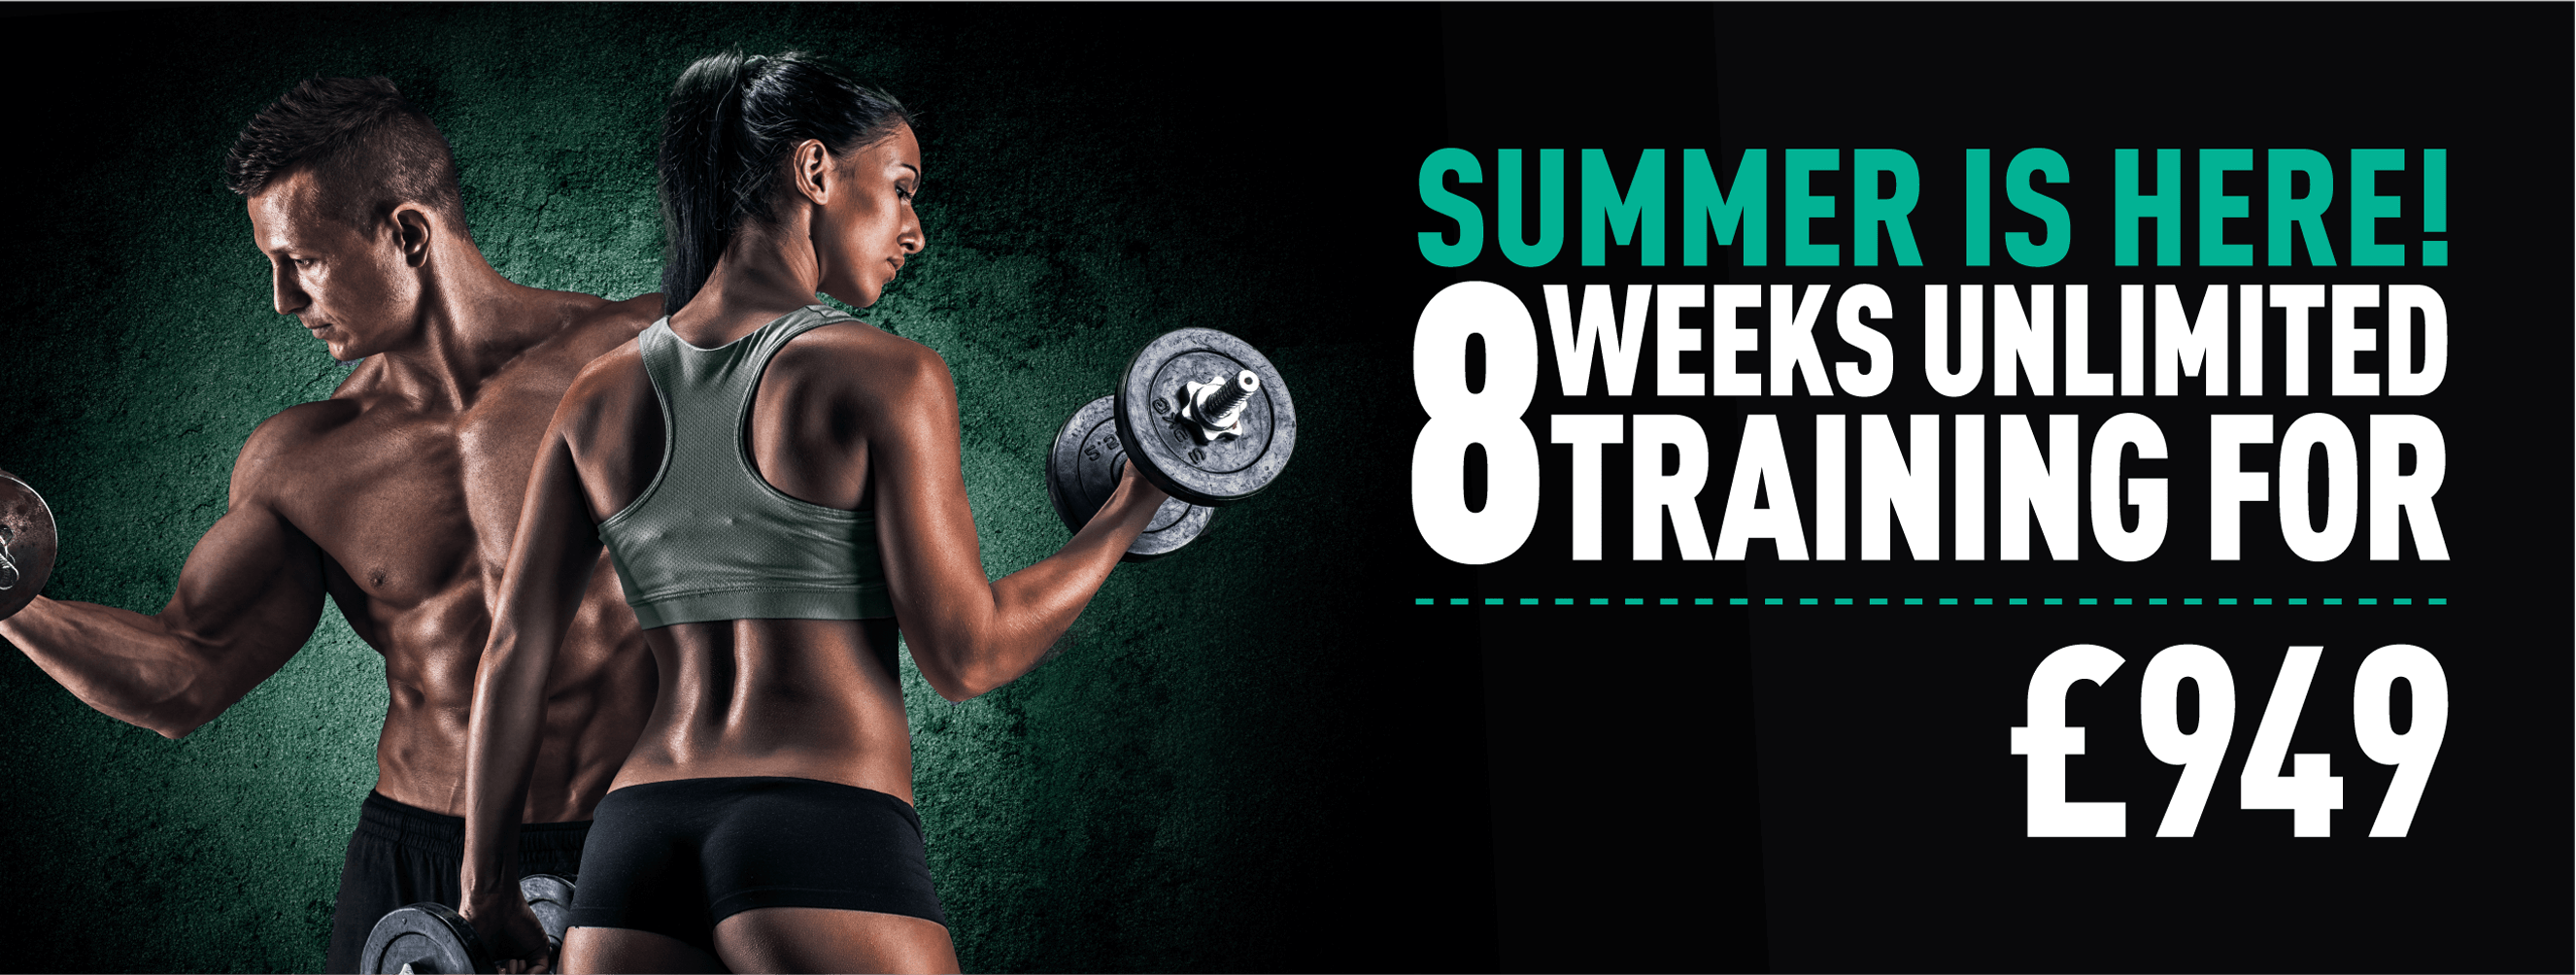 Shape up thi summer with umlimited shared personal training